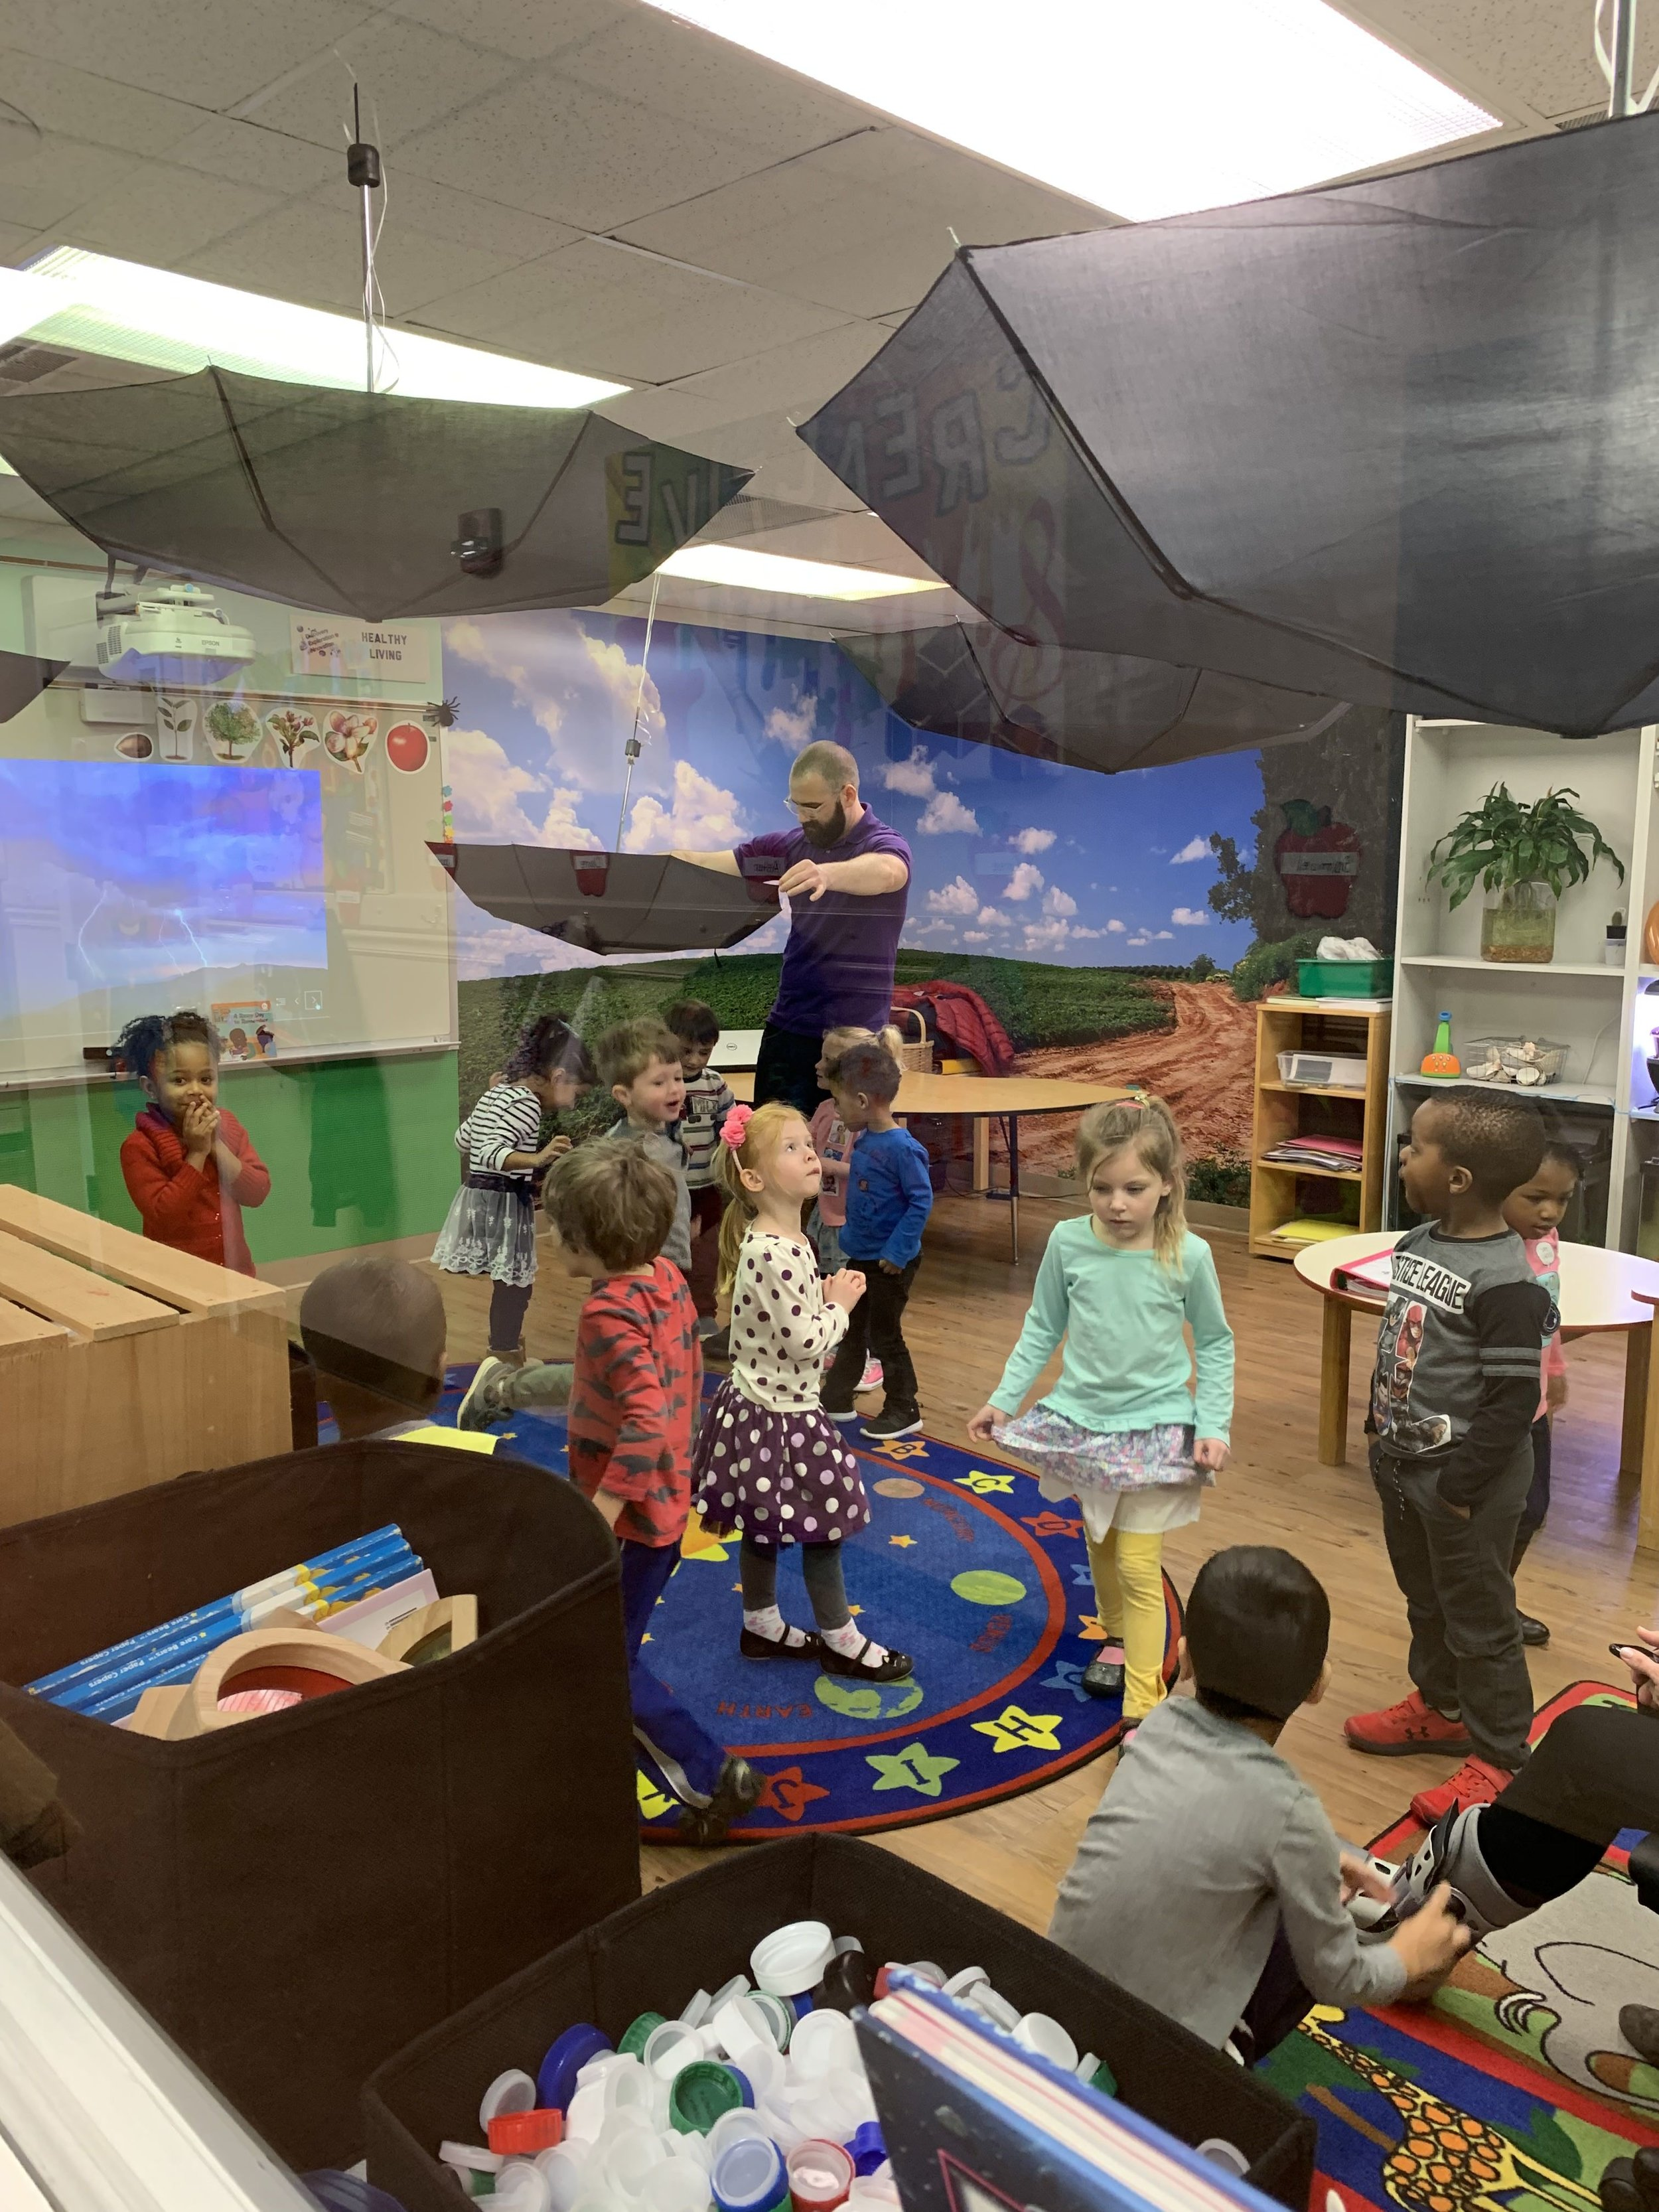 Enrichments - Unlike many daycares, we integration enrichment activities into our daily experiences. Our STEM Den allows students to explore their world through hands on experiences and activities. The time our students spend in the STEM Den is often their favorite time of the Day. Learn More